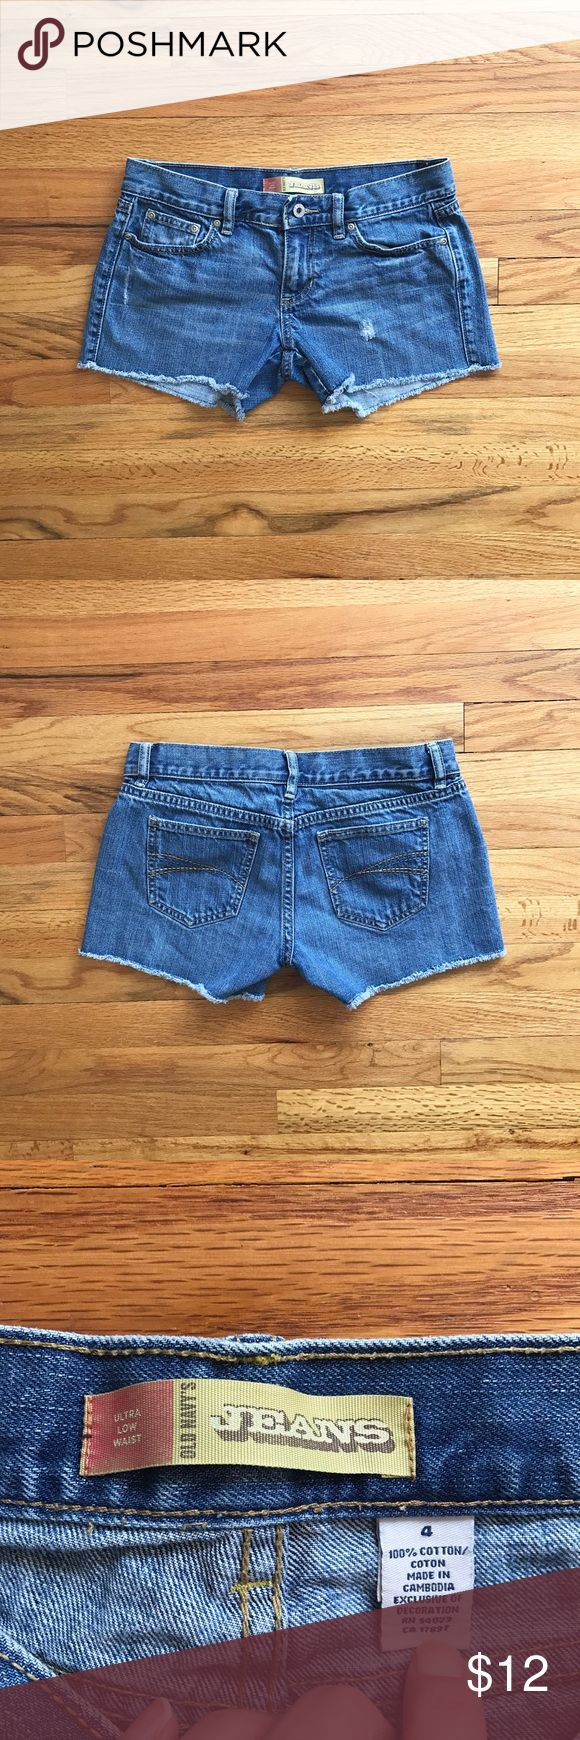 OLD NAVY low waist cutoff jean shorts Super cute jean shorts by OLD NAVY in excellent used condition. Light wear; no flaws. Fits true to size. Old Navy Shorts Jean Shorts